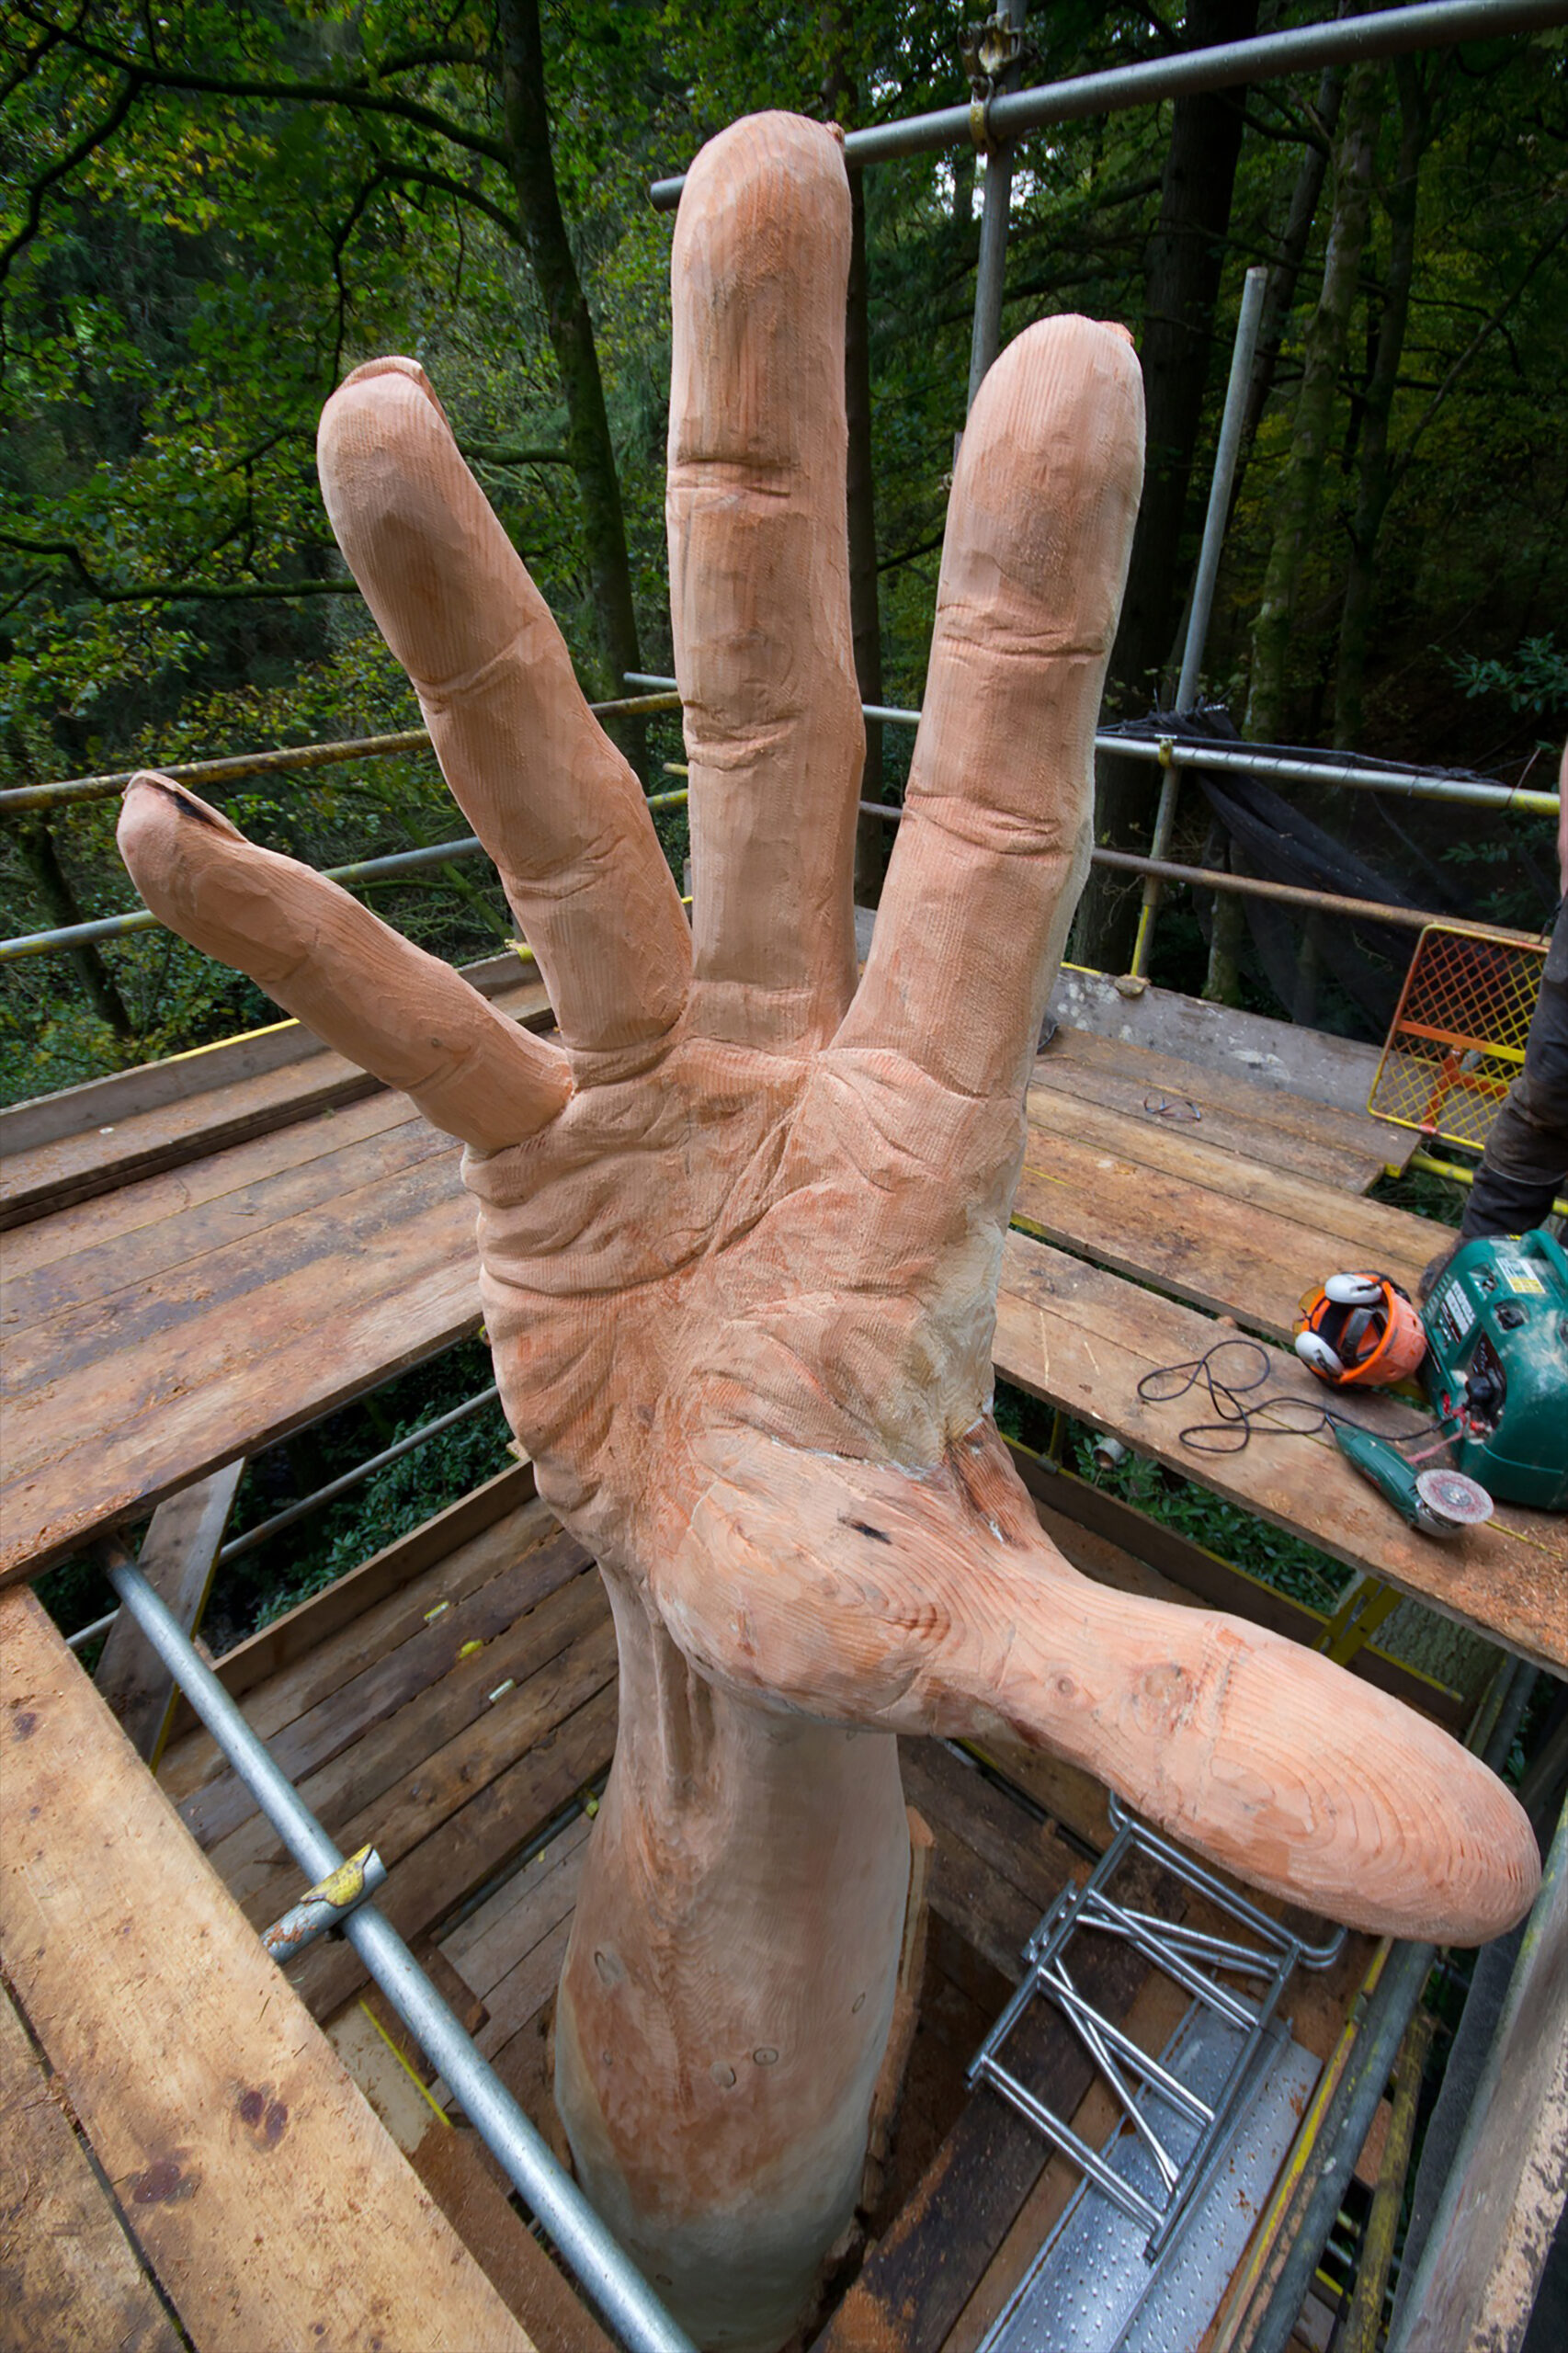 close up view of the giant hand of vyrnwy, showing creases and veins and stretch in the hand